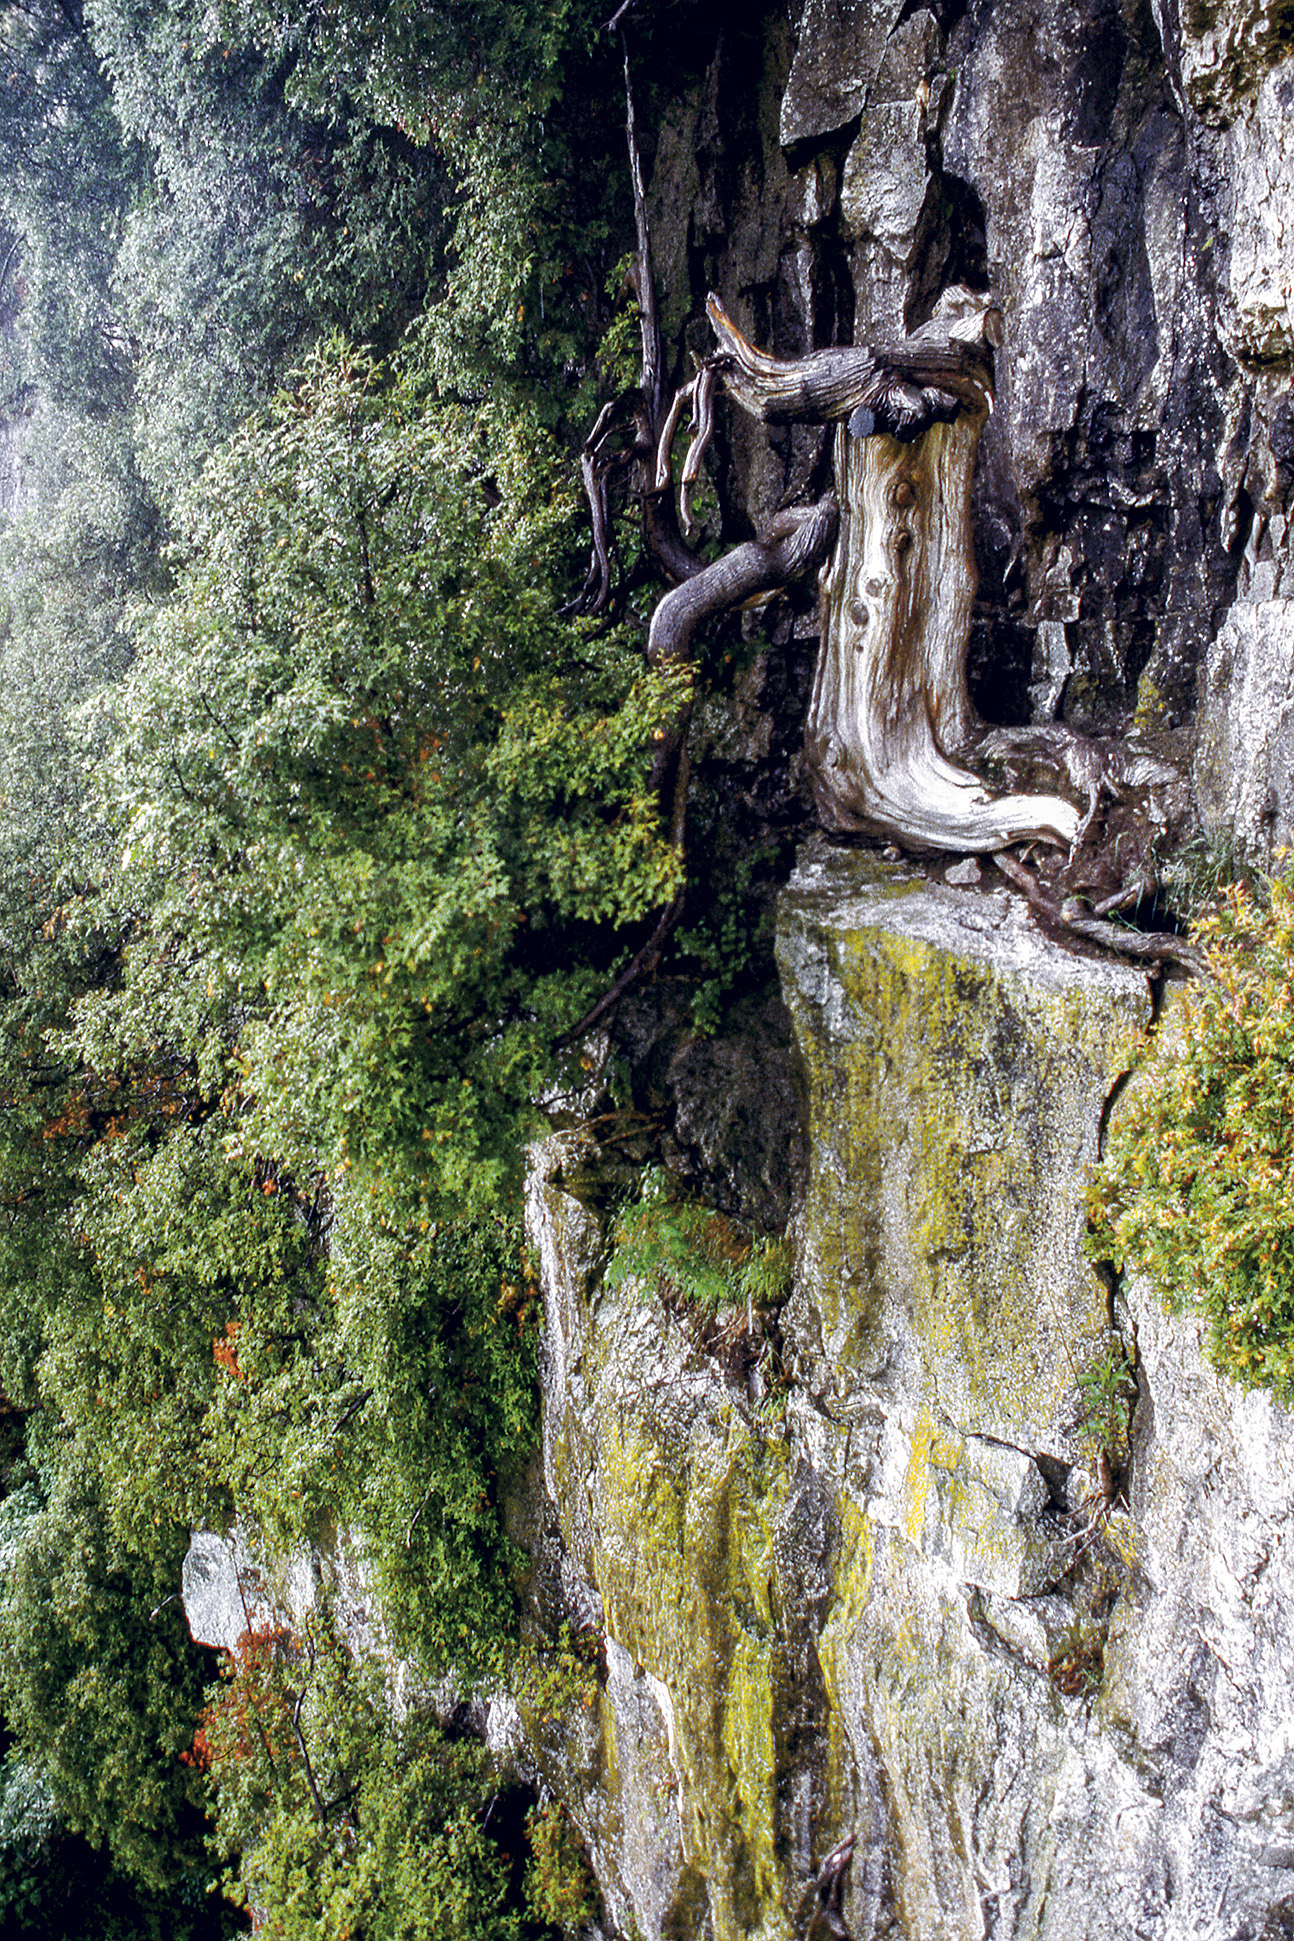 One of the oldest eastern white cedars on the cliffs of the Niagara Escarpment. This tree germinated in the year 1134, making it 883 years old today. Climbers likely trimmed the branches on its northern side to make way for a climbing route in 1992. At the time of the photograph, two living branches on the south side of the tree were keeping it alive, though scientists haven't been back to survey whether it survives today. [Photo] Peter Kelly